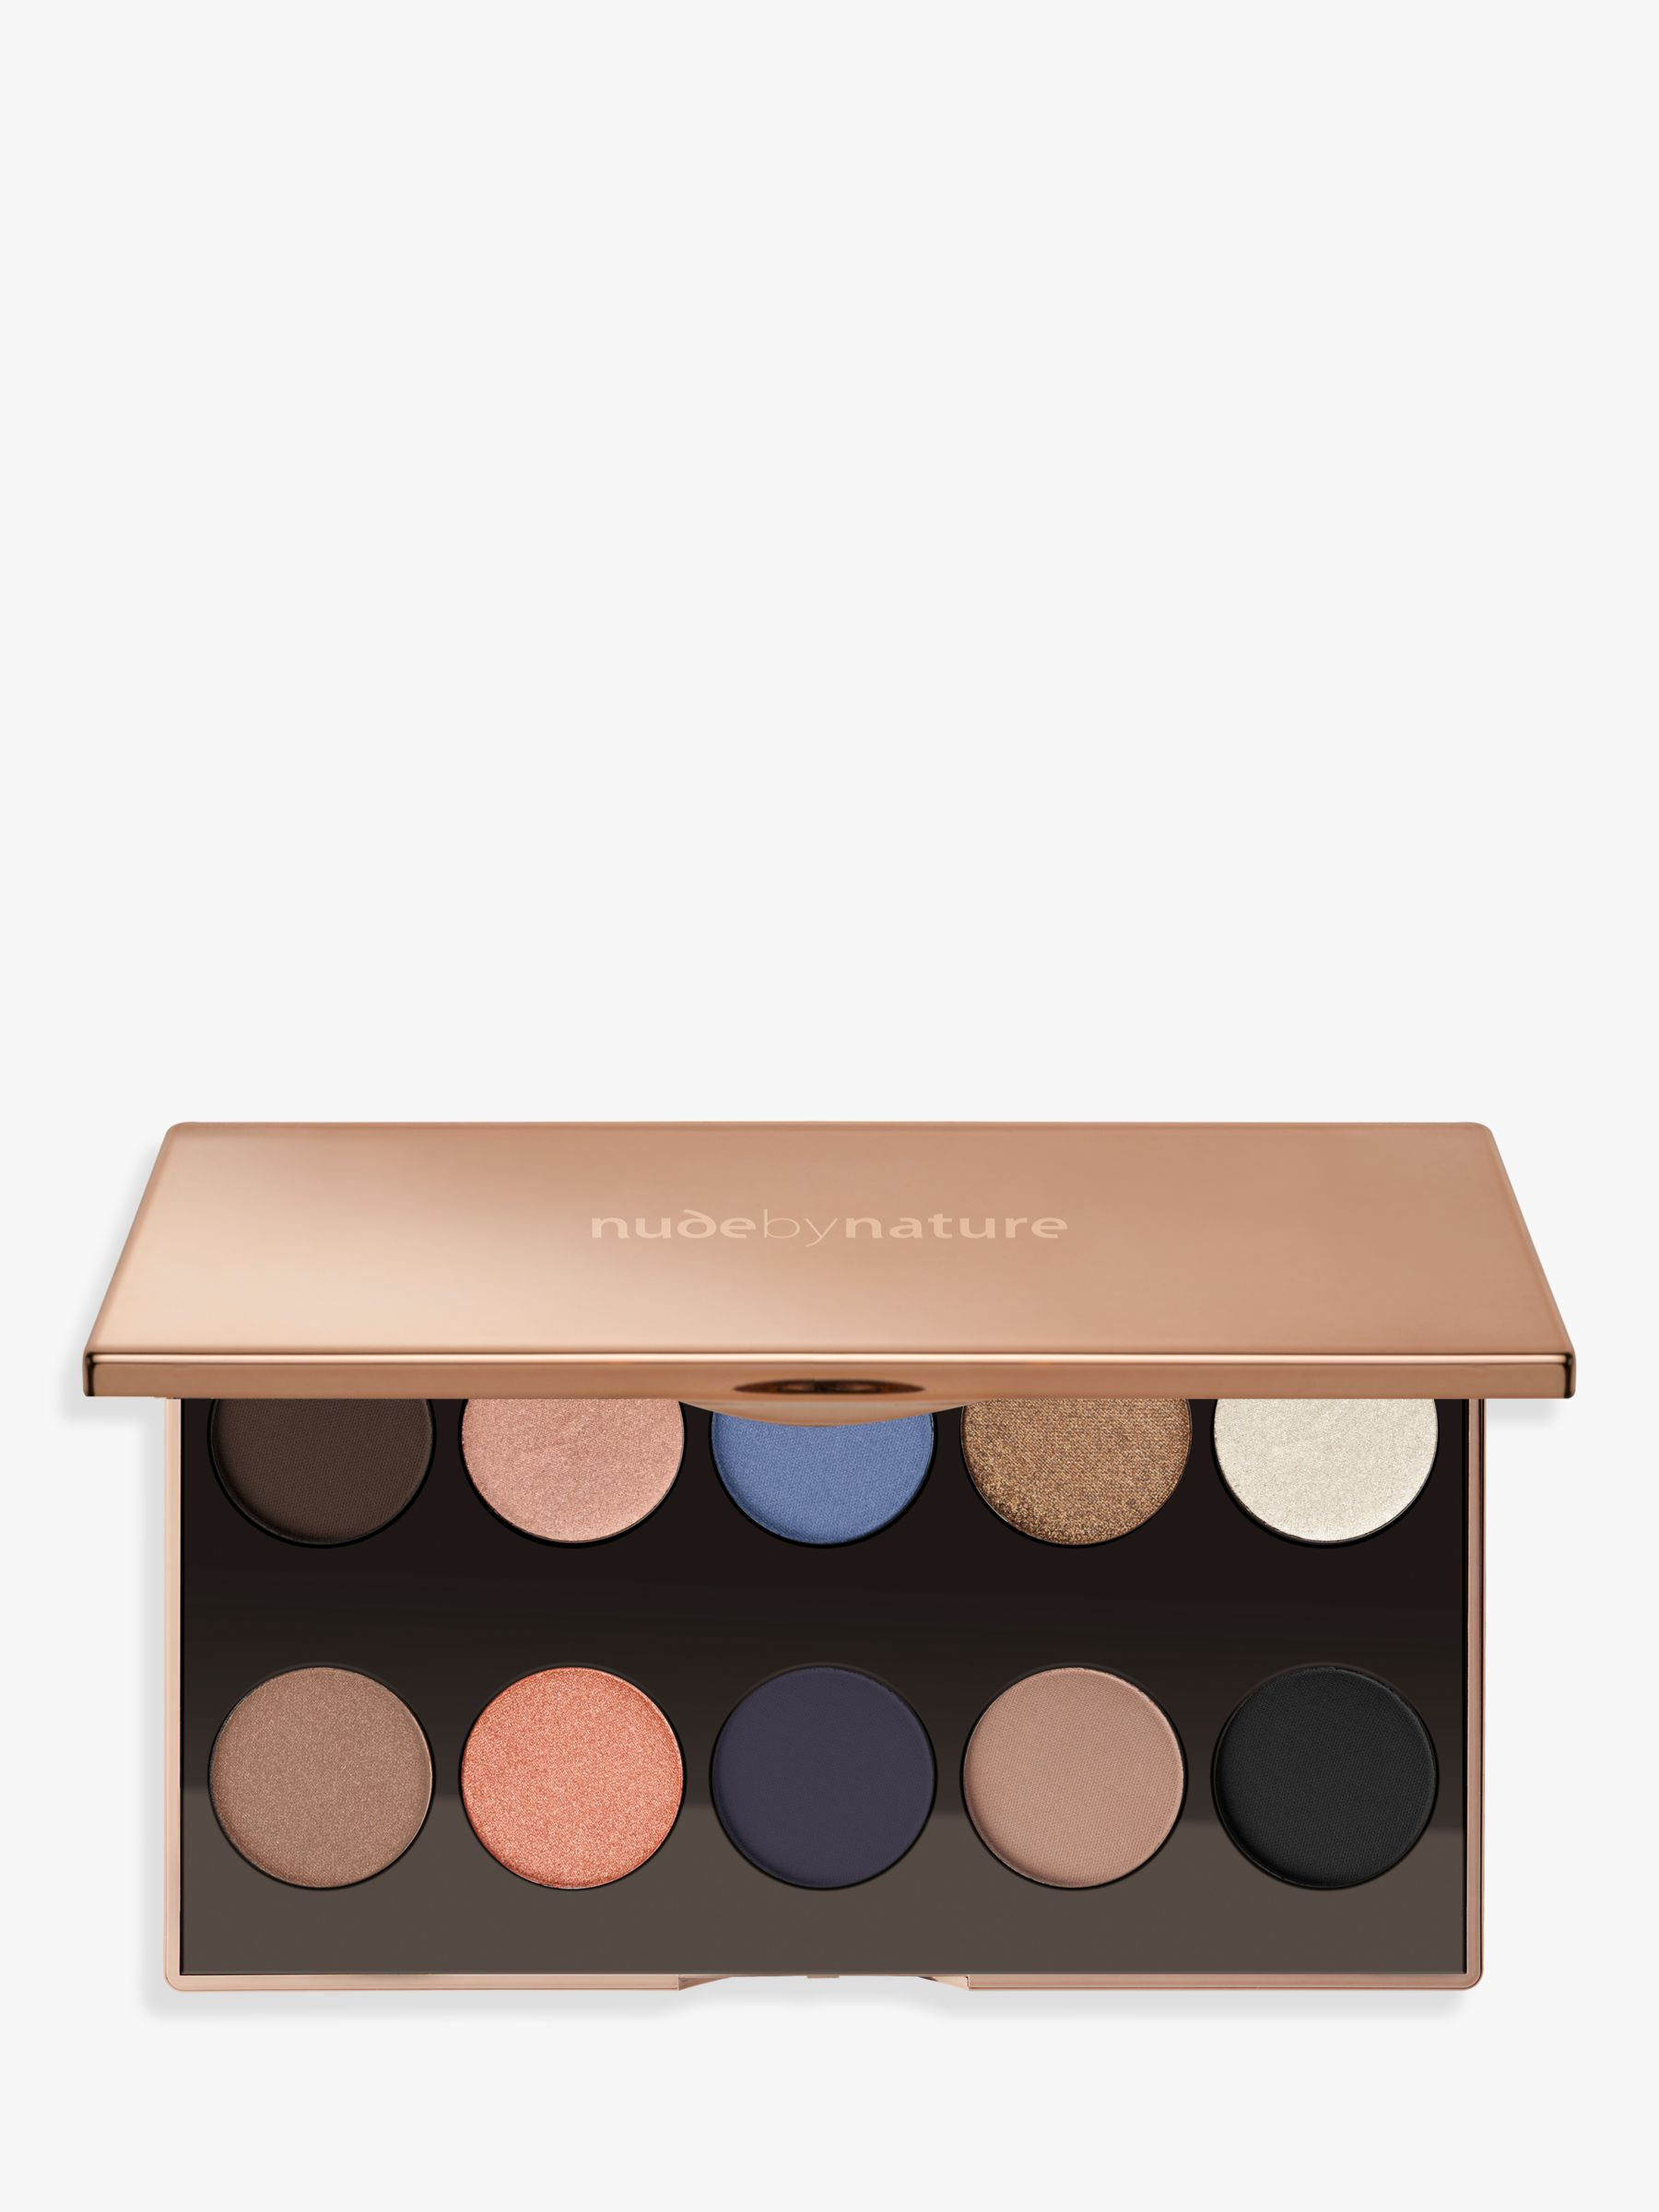 Nude by Nature Nude by Nature Natural Wonders Eye Palette, Multi